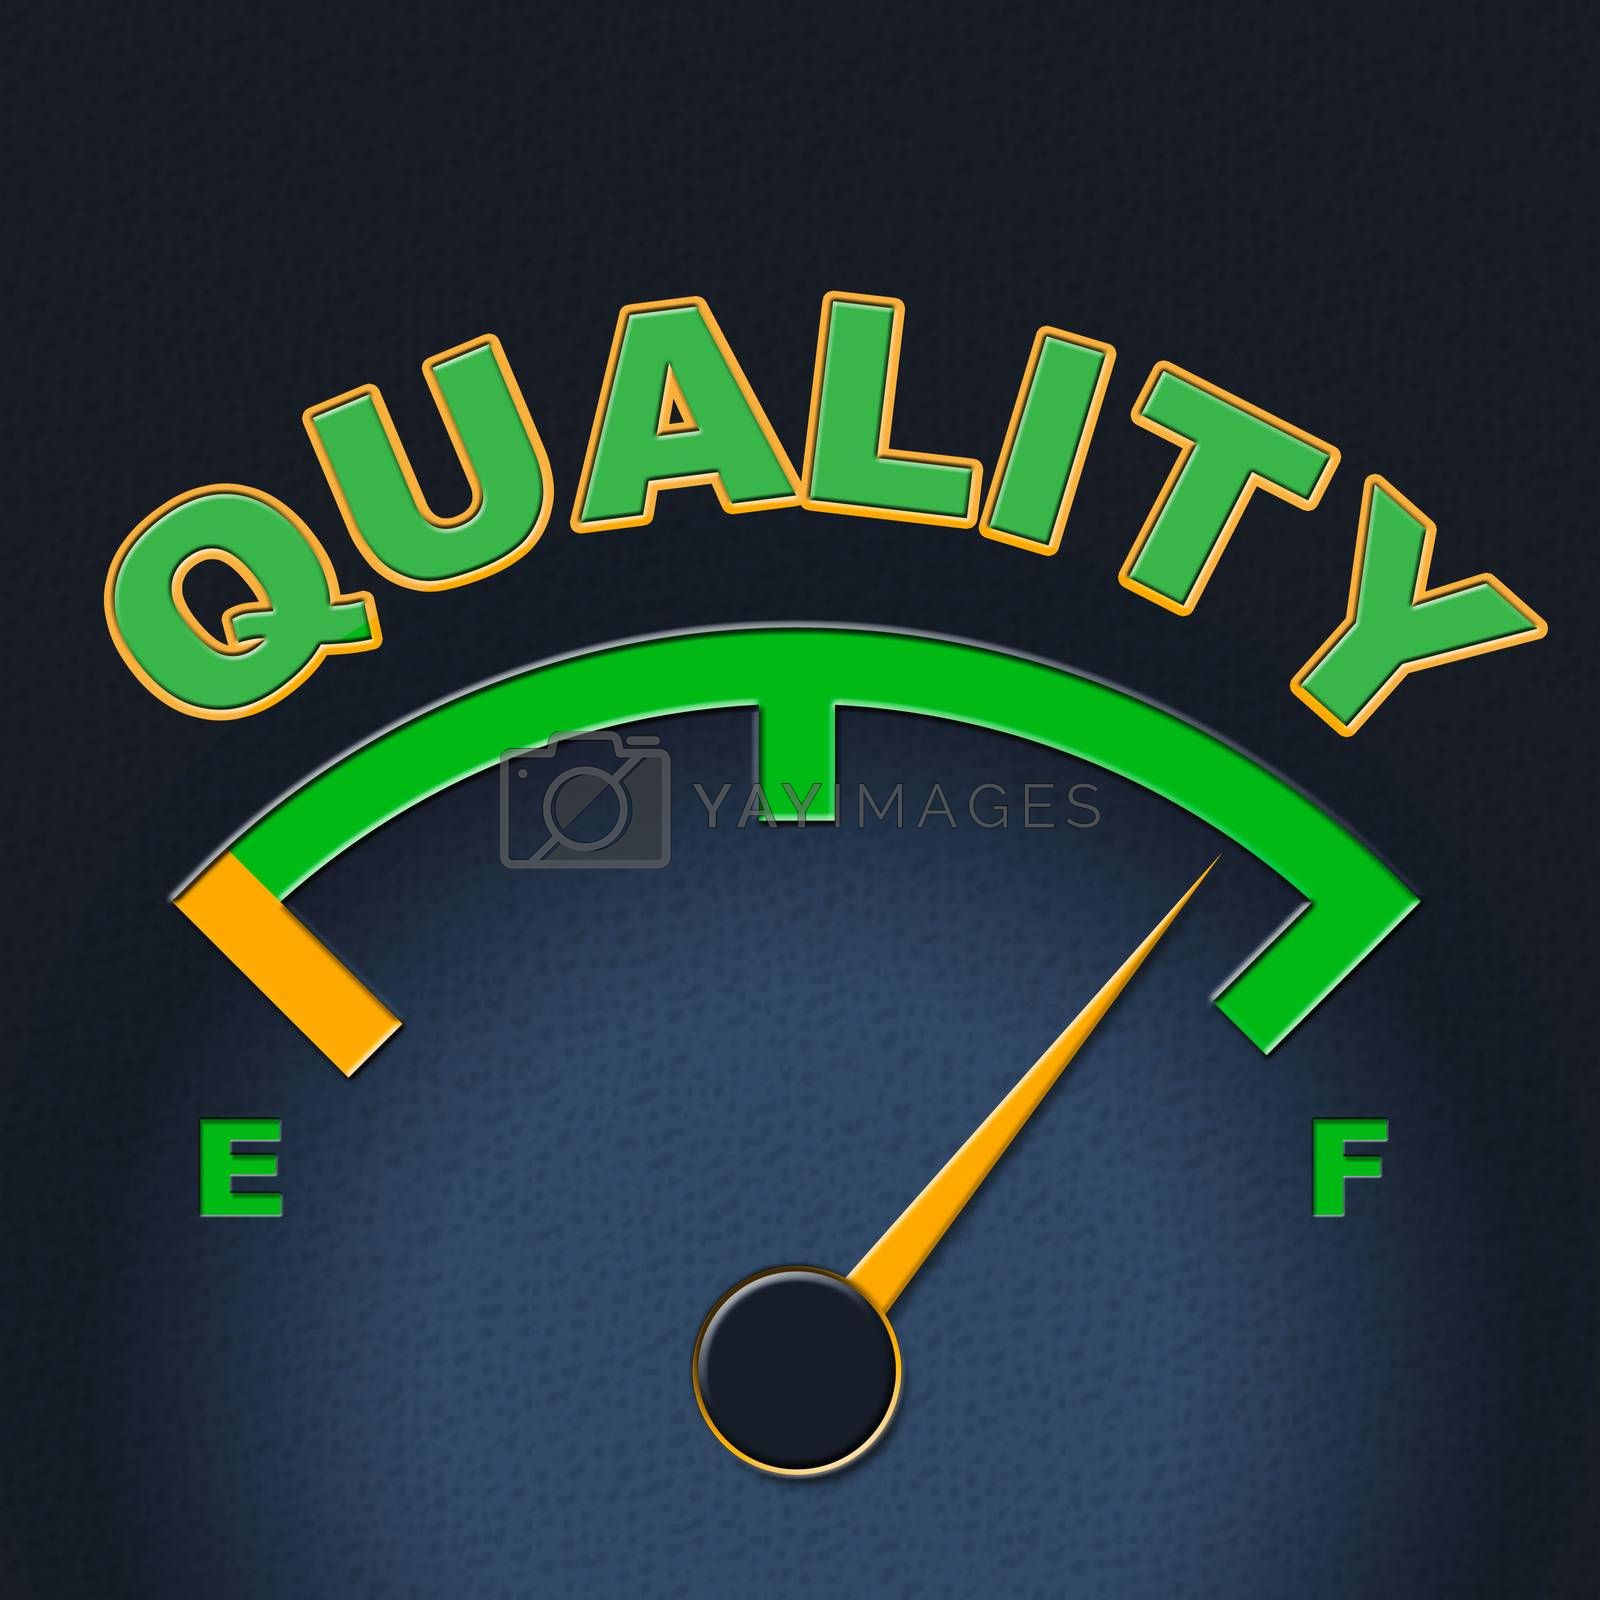 Quality Gauge Indicates Perfect Indicator And Satisfaction by stuartmiles